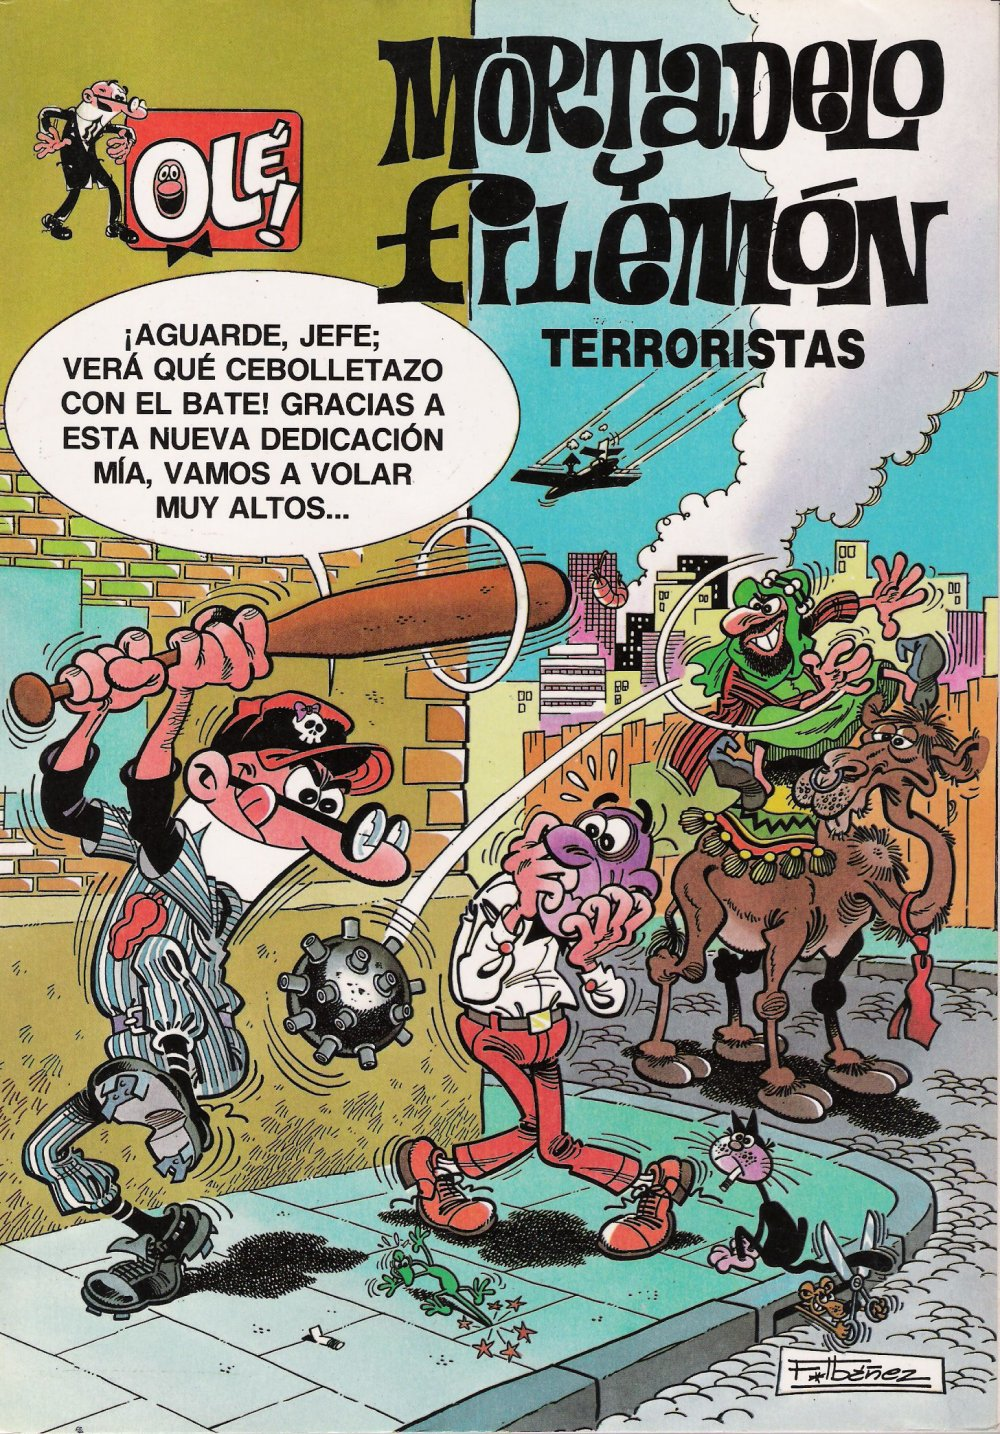 Terroristas - Mortadelo y Filemón